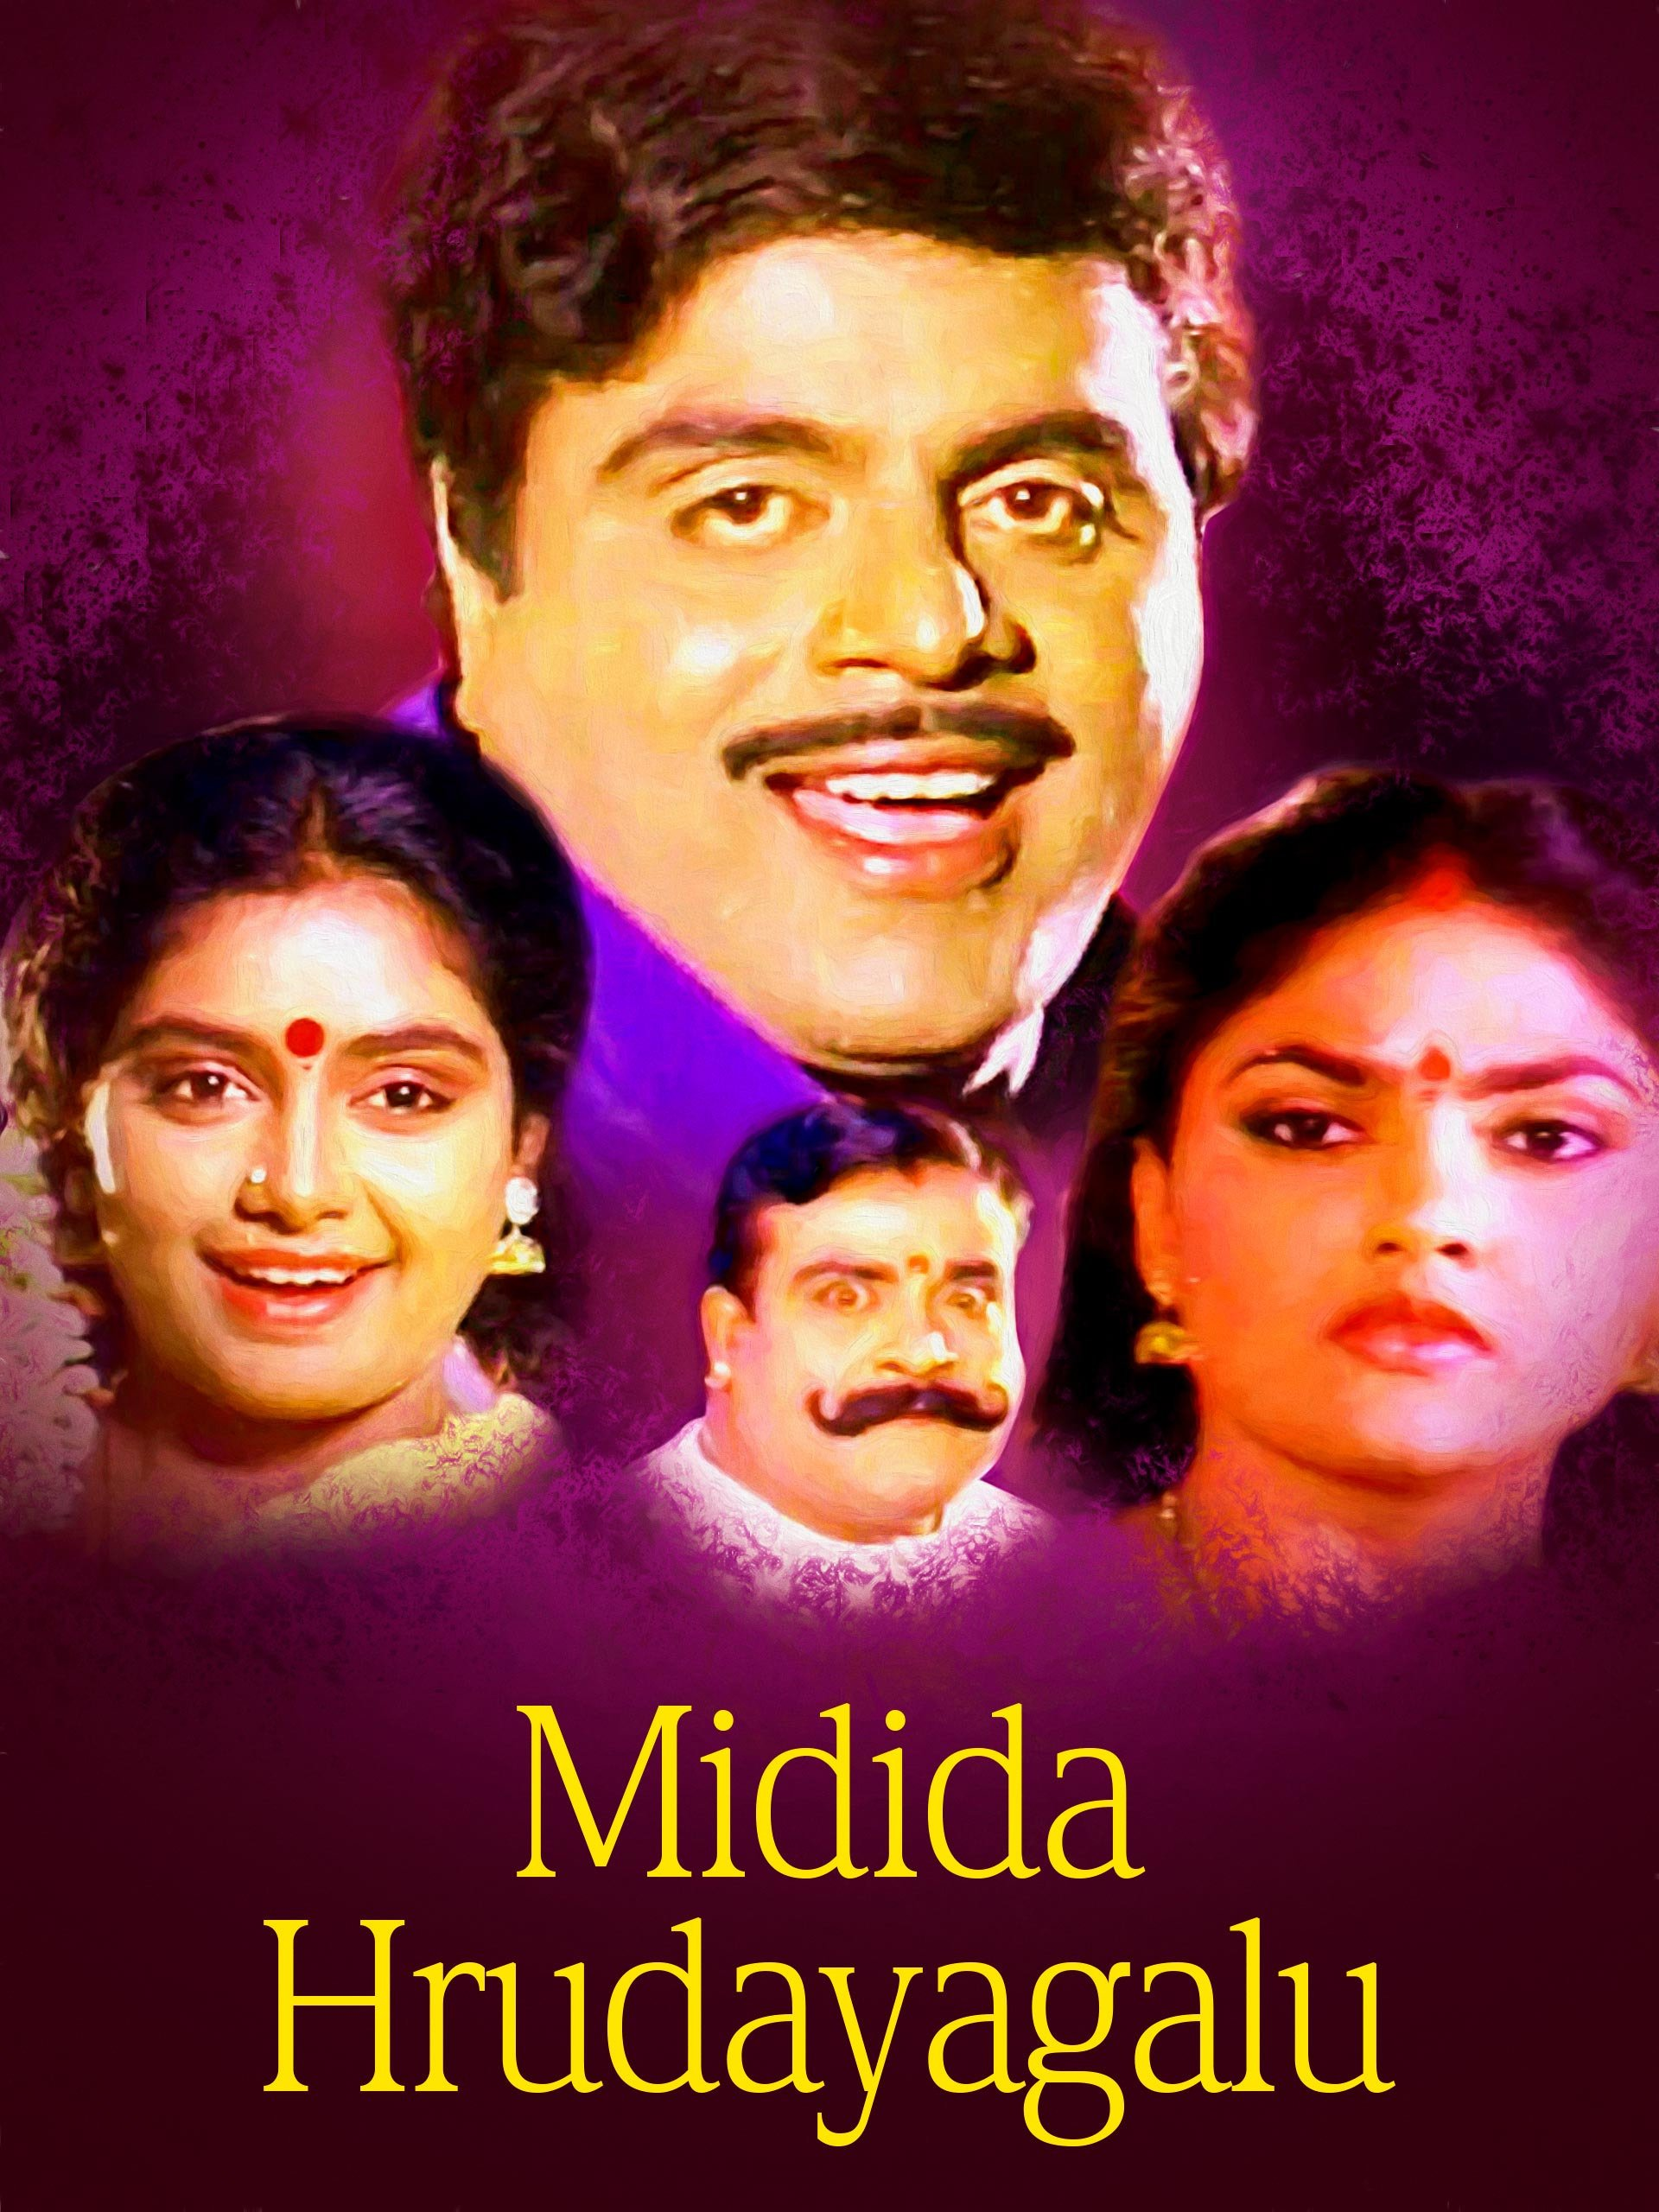 Midida hrudayagalu kannada mp3 songs free download.